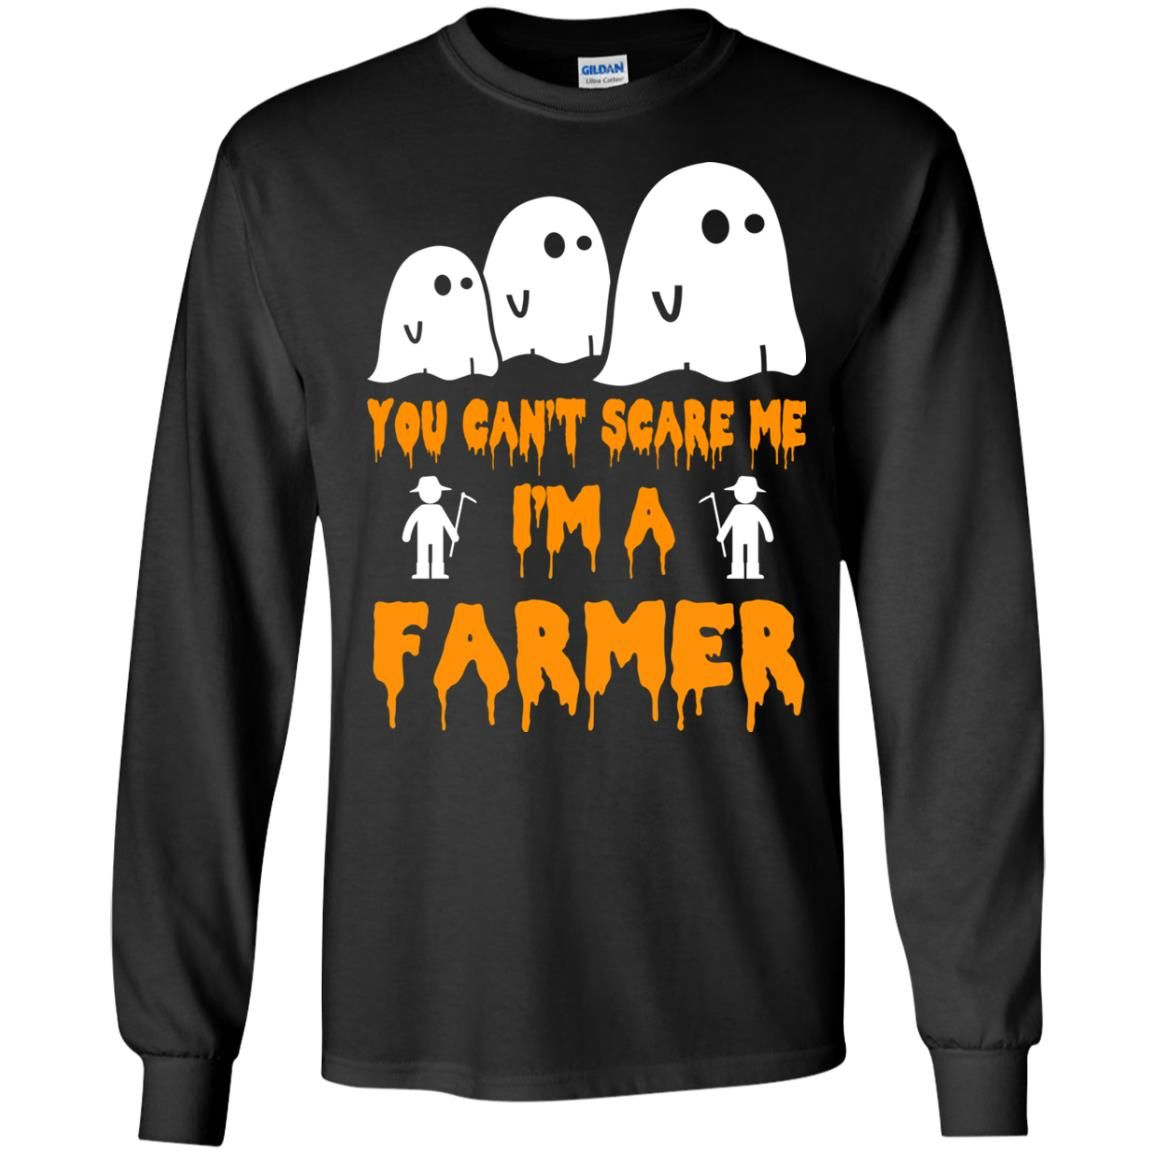 image 413 - You can't scare me I'm a Farmer shirt, hoodie, tank